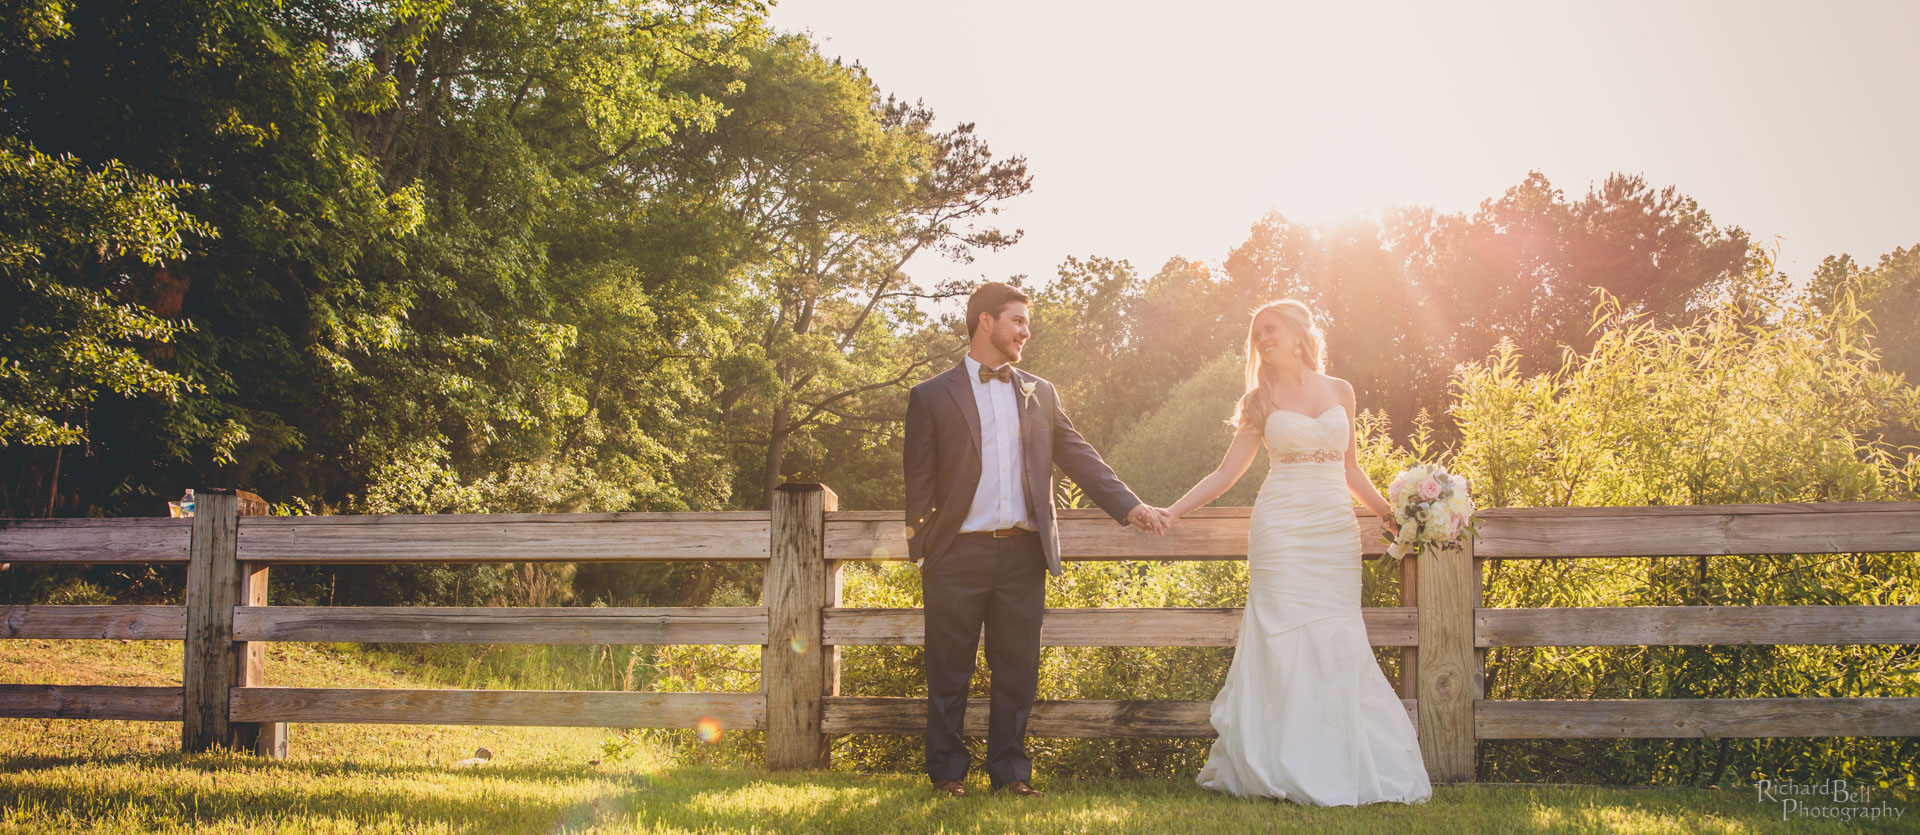 Sunny Bride and Groom